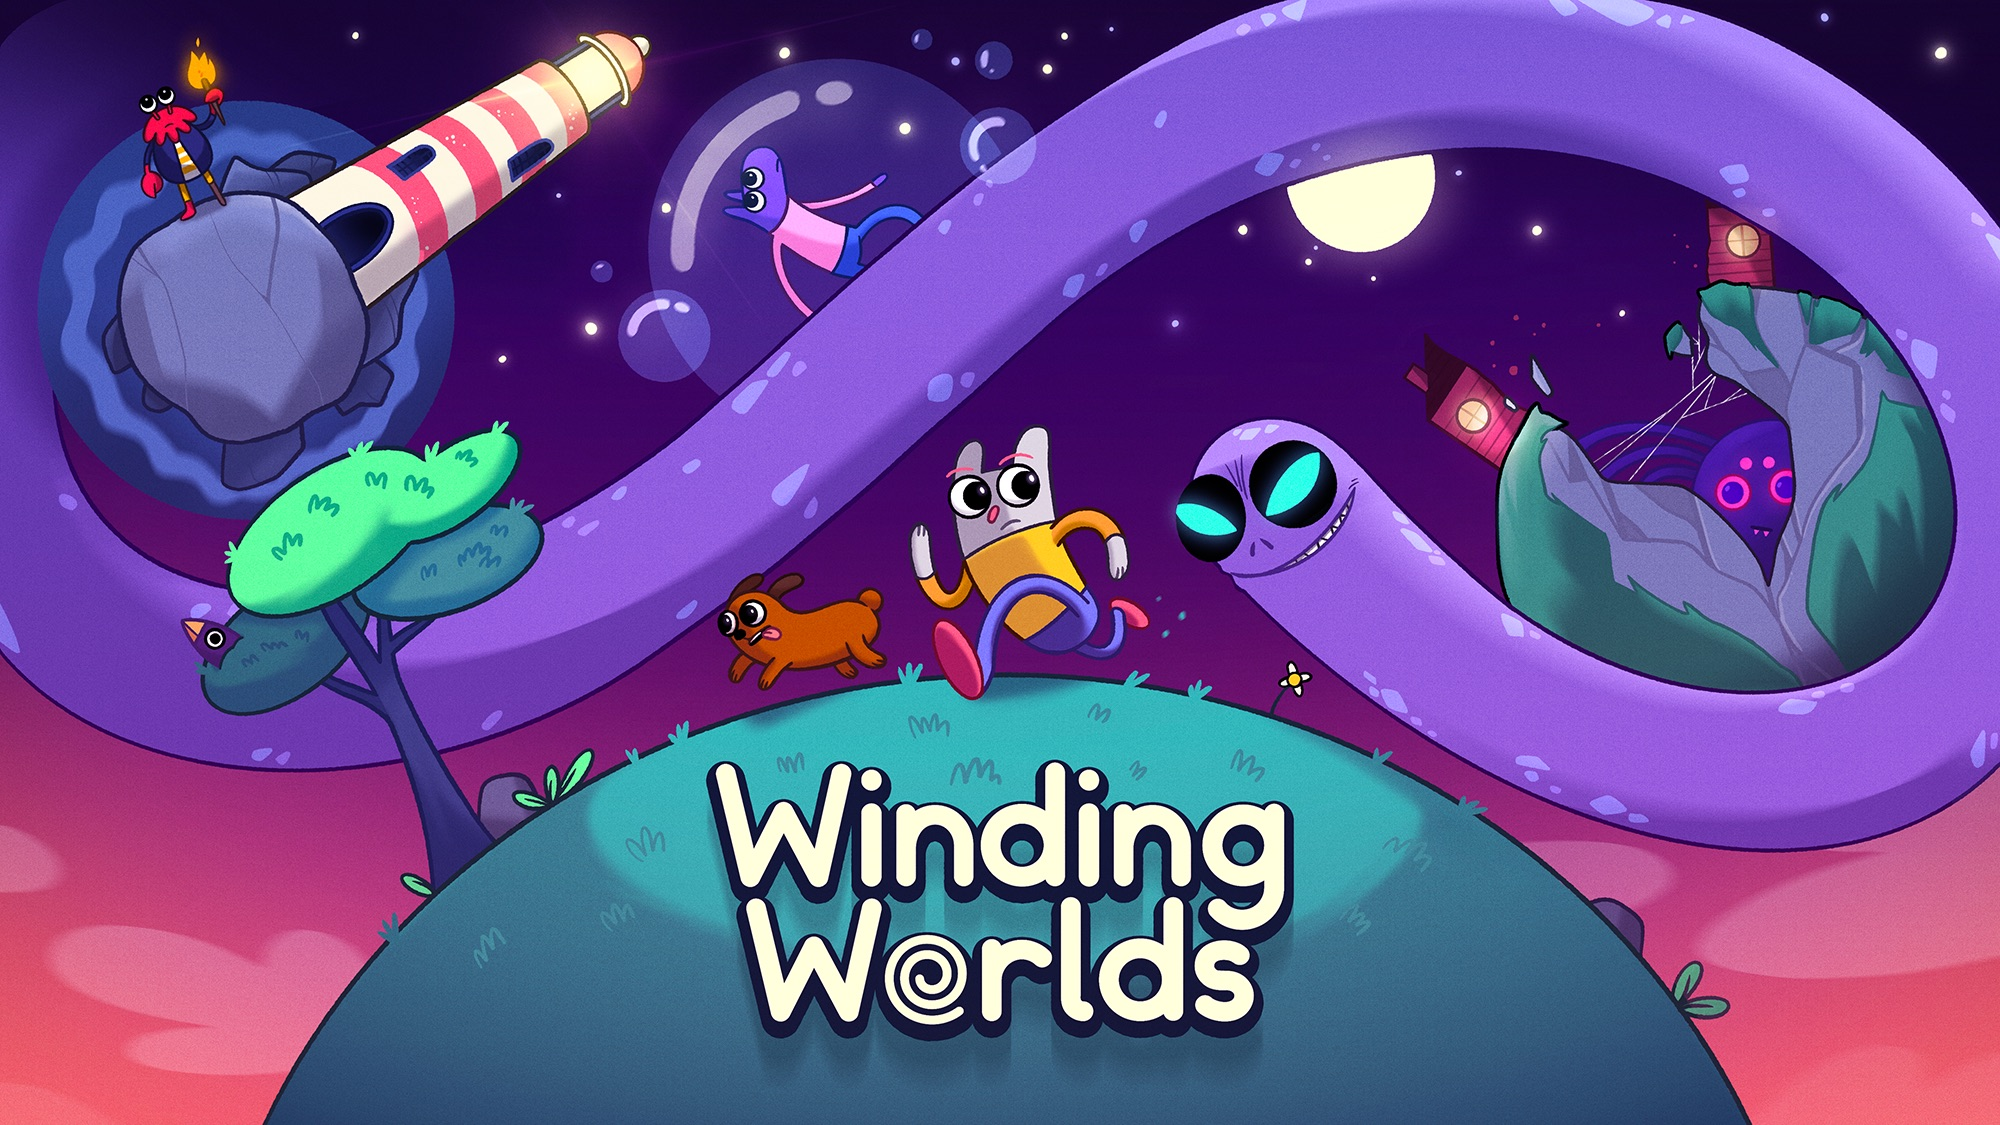 World-Wiggling Puzzle Journey 'Winding Worlds' Debuts on Apple Arcade